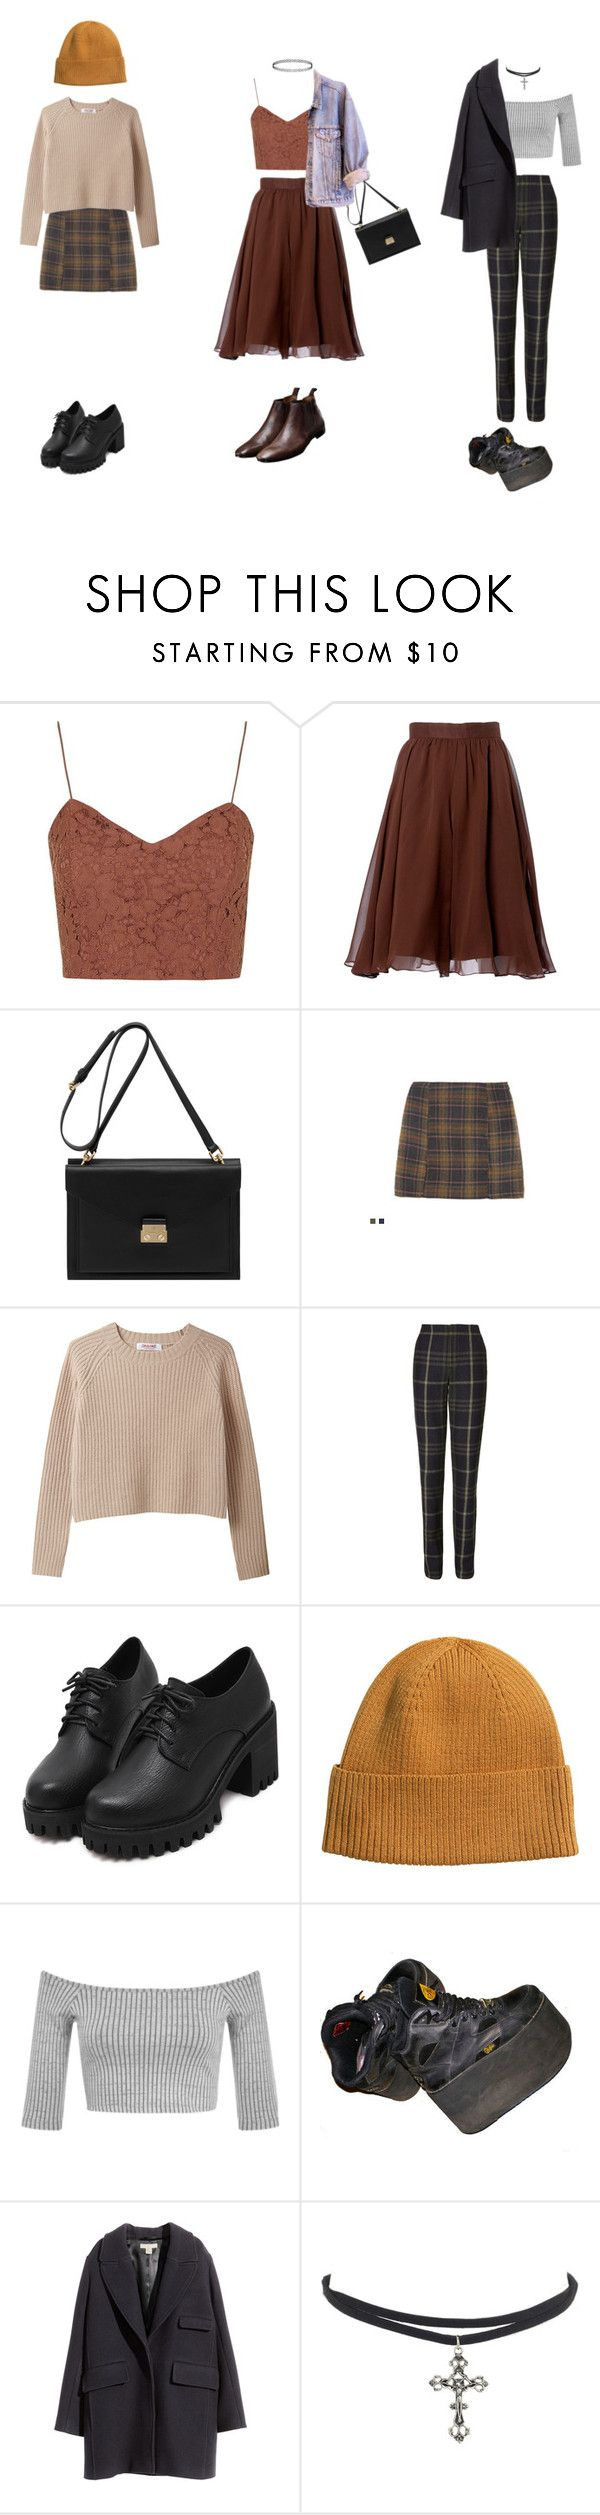 """Untitled #973"" by adolescentdazecraze ❤ liked on Polyvore featuring moda, Topshop, Carolina Herrera, Mulberry, Paul Smith, Thakoon Addition, H&M, Miss Selfridge, women's clothing e women"